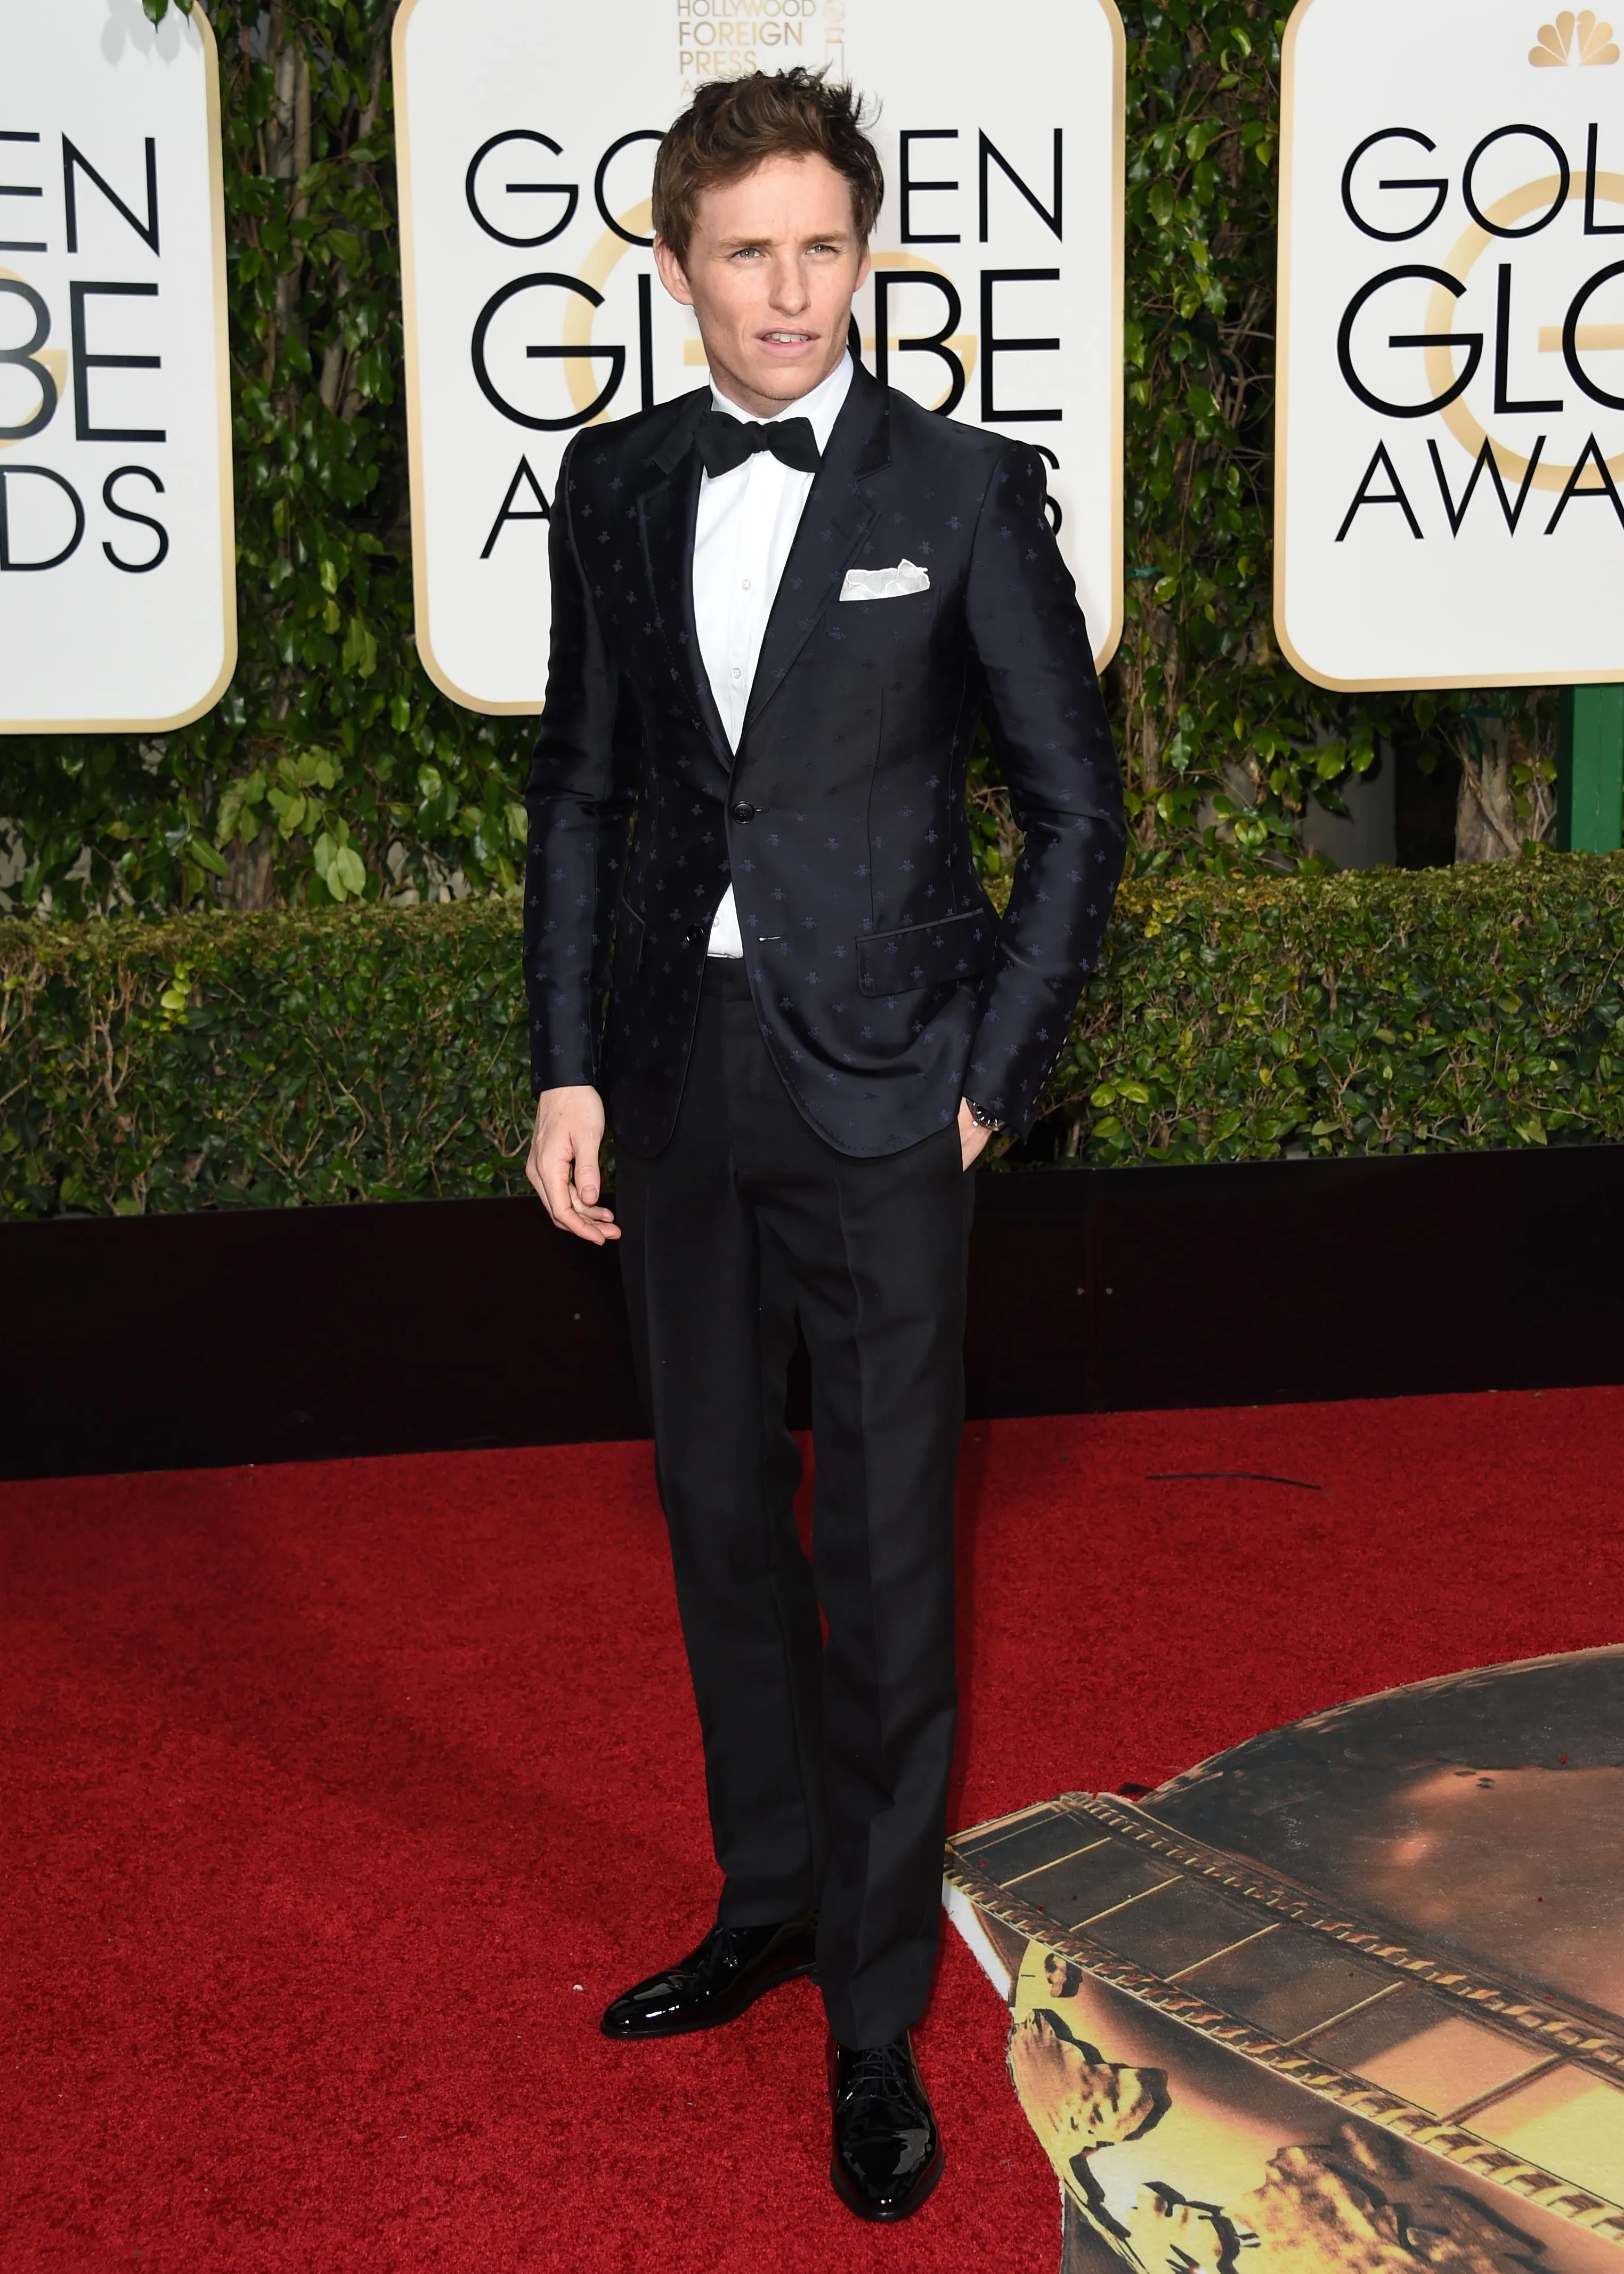 The 11 Best Dressed Men At The Golden Globes Photos GQ